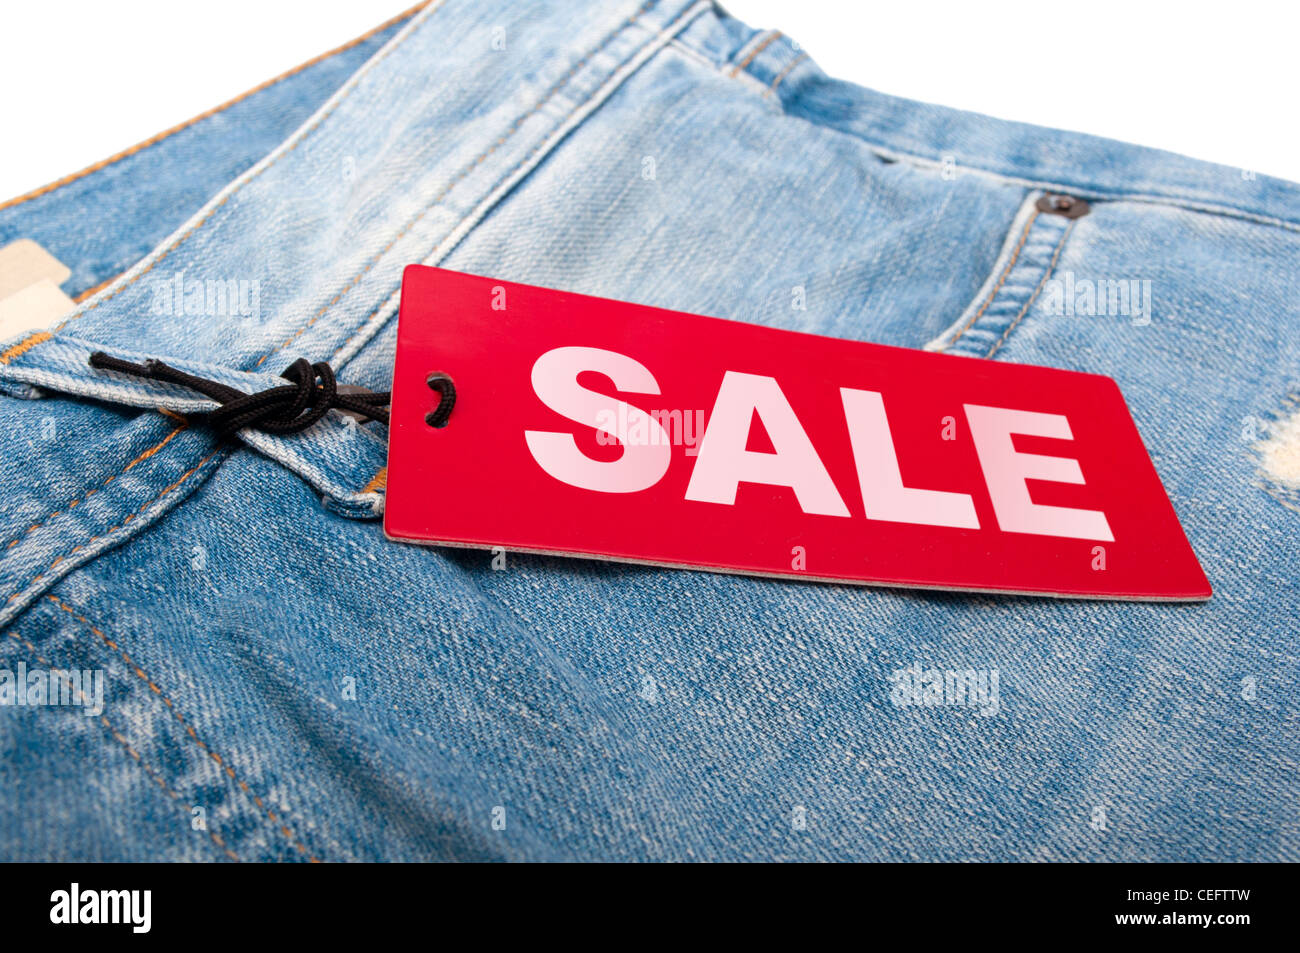 Closeup of Blue Jeans With Red Sale Tag - Stock Image